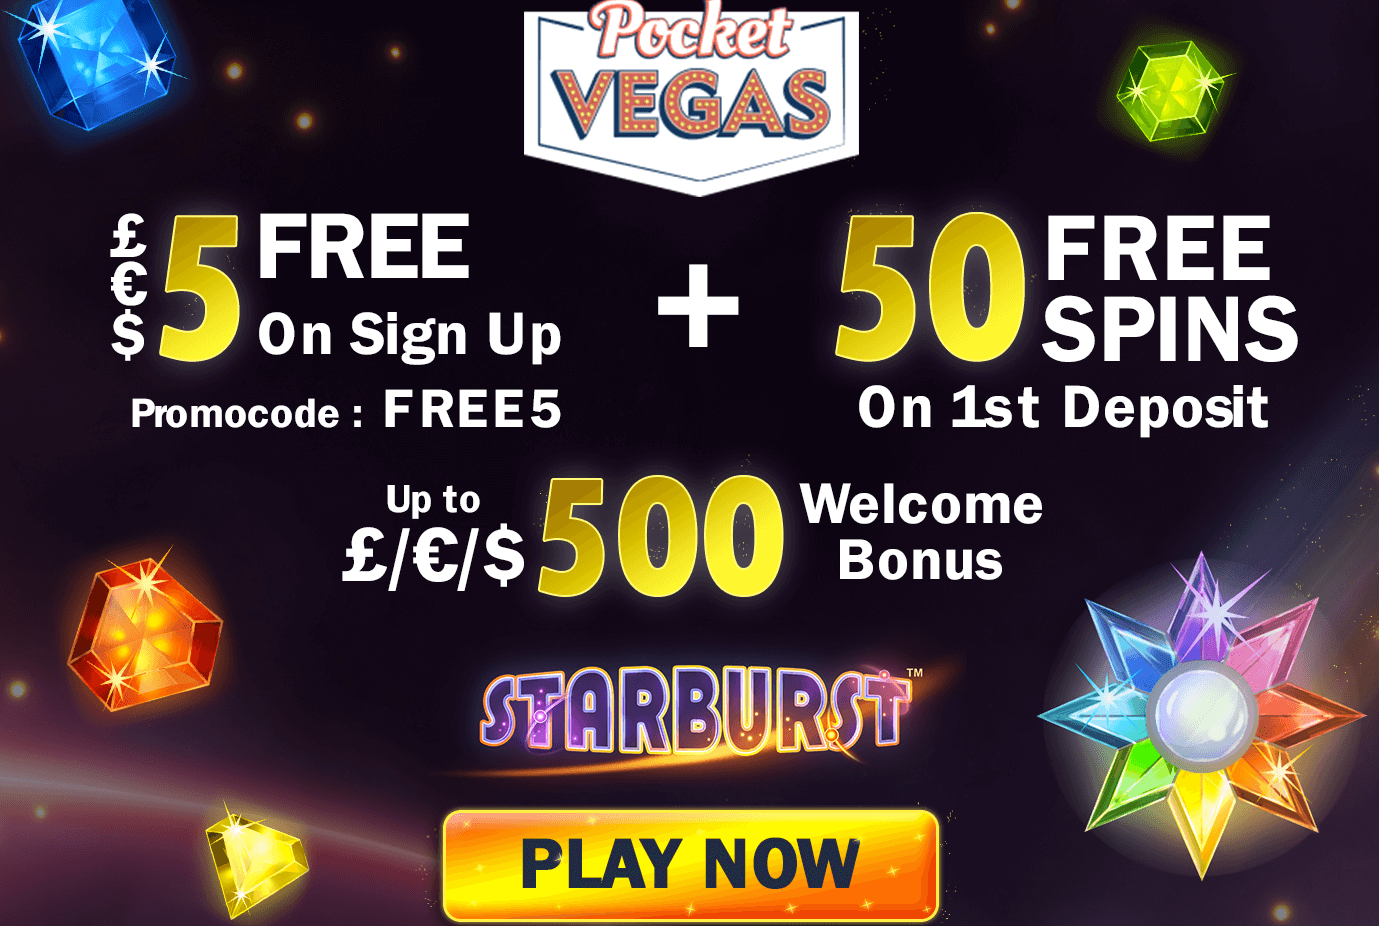 pocket vegas casino bonus pay by phone casino